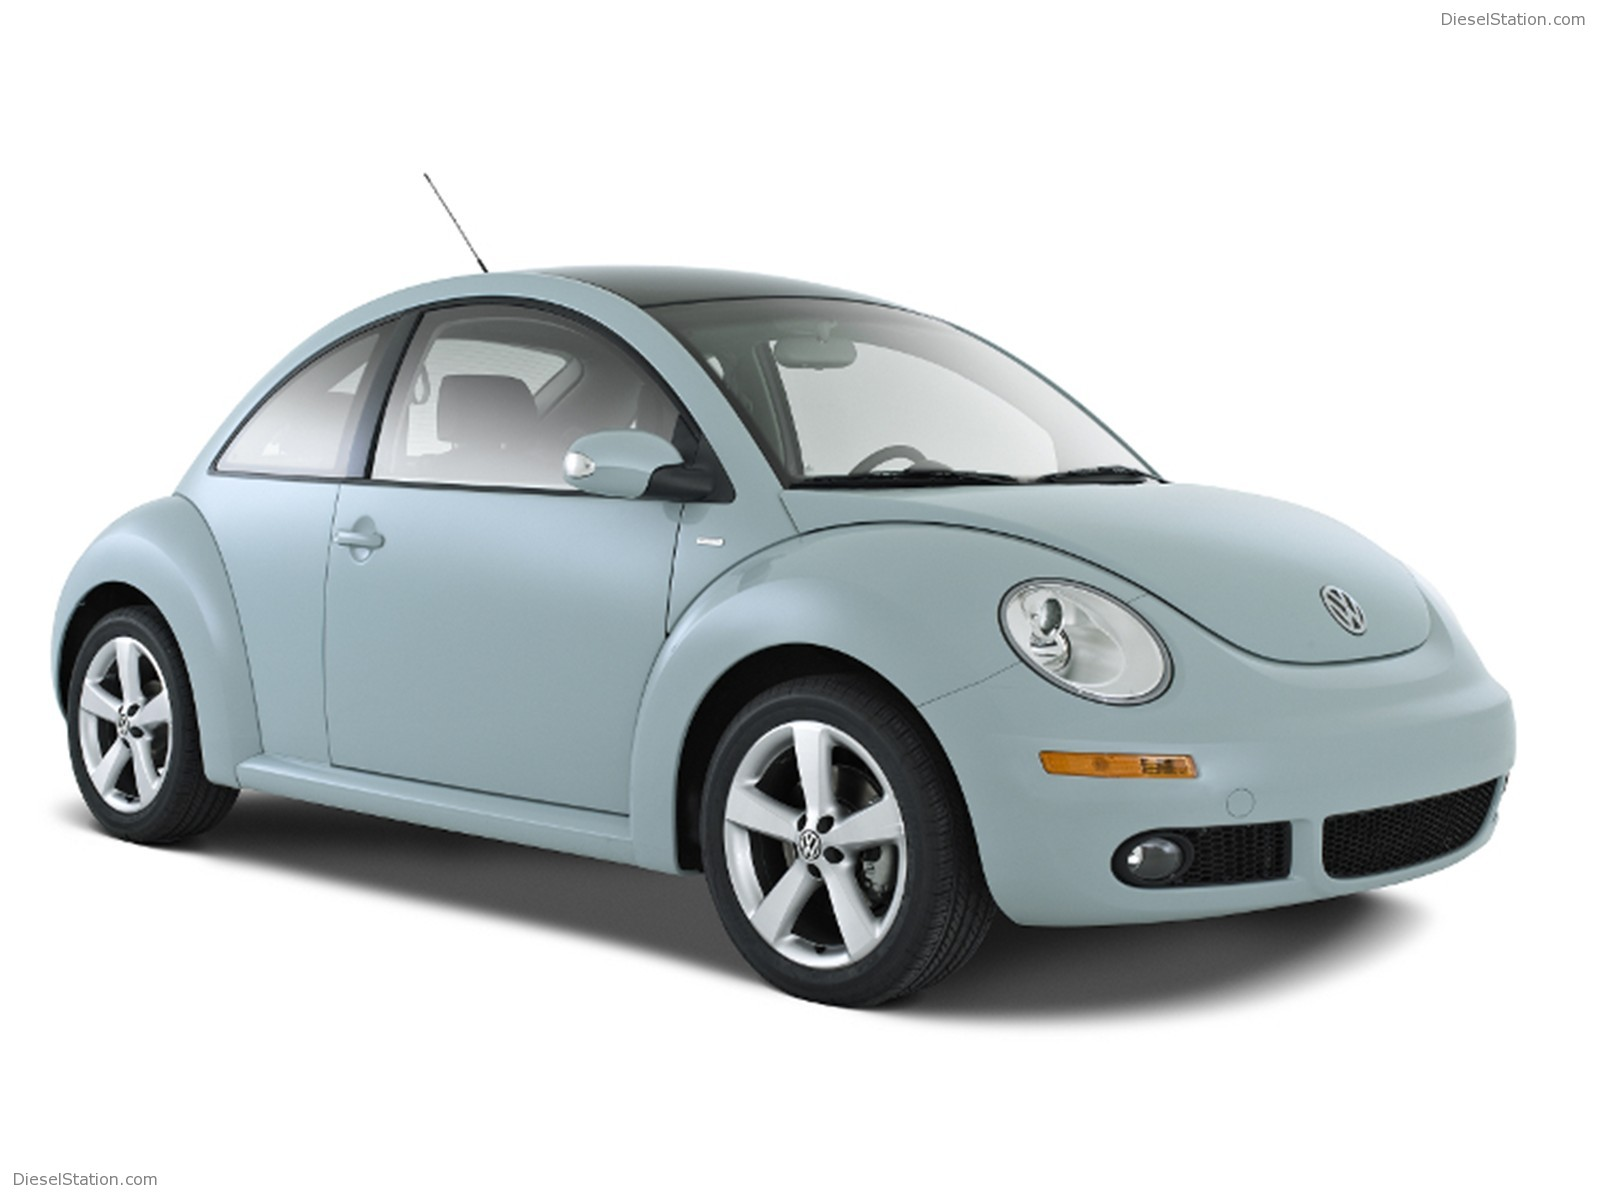 Volkswagen Beetle 1.2 2010 photo - 1